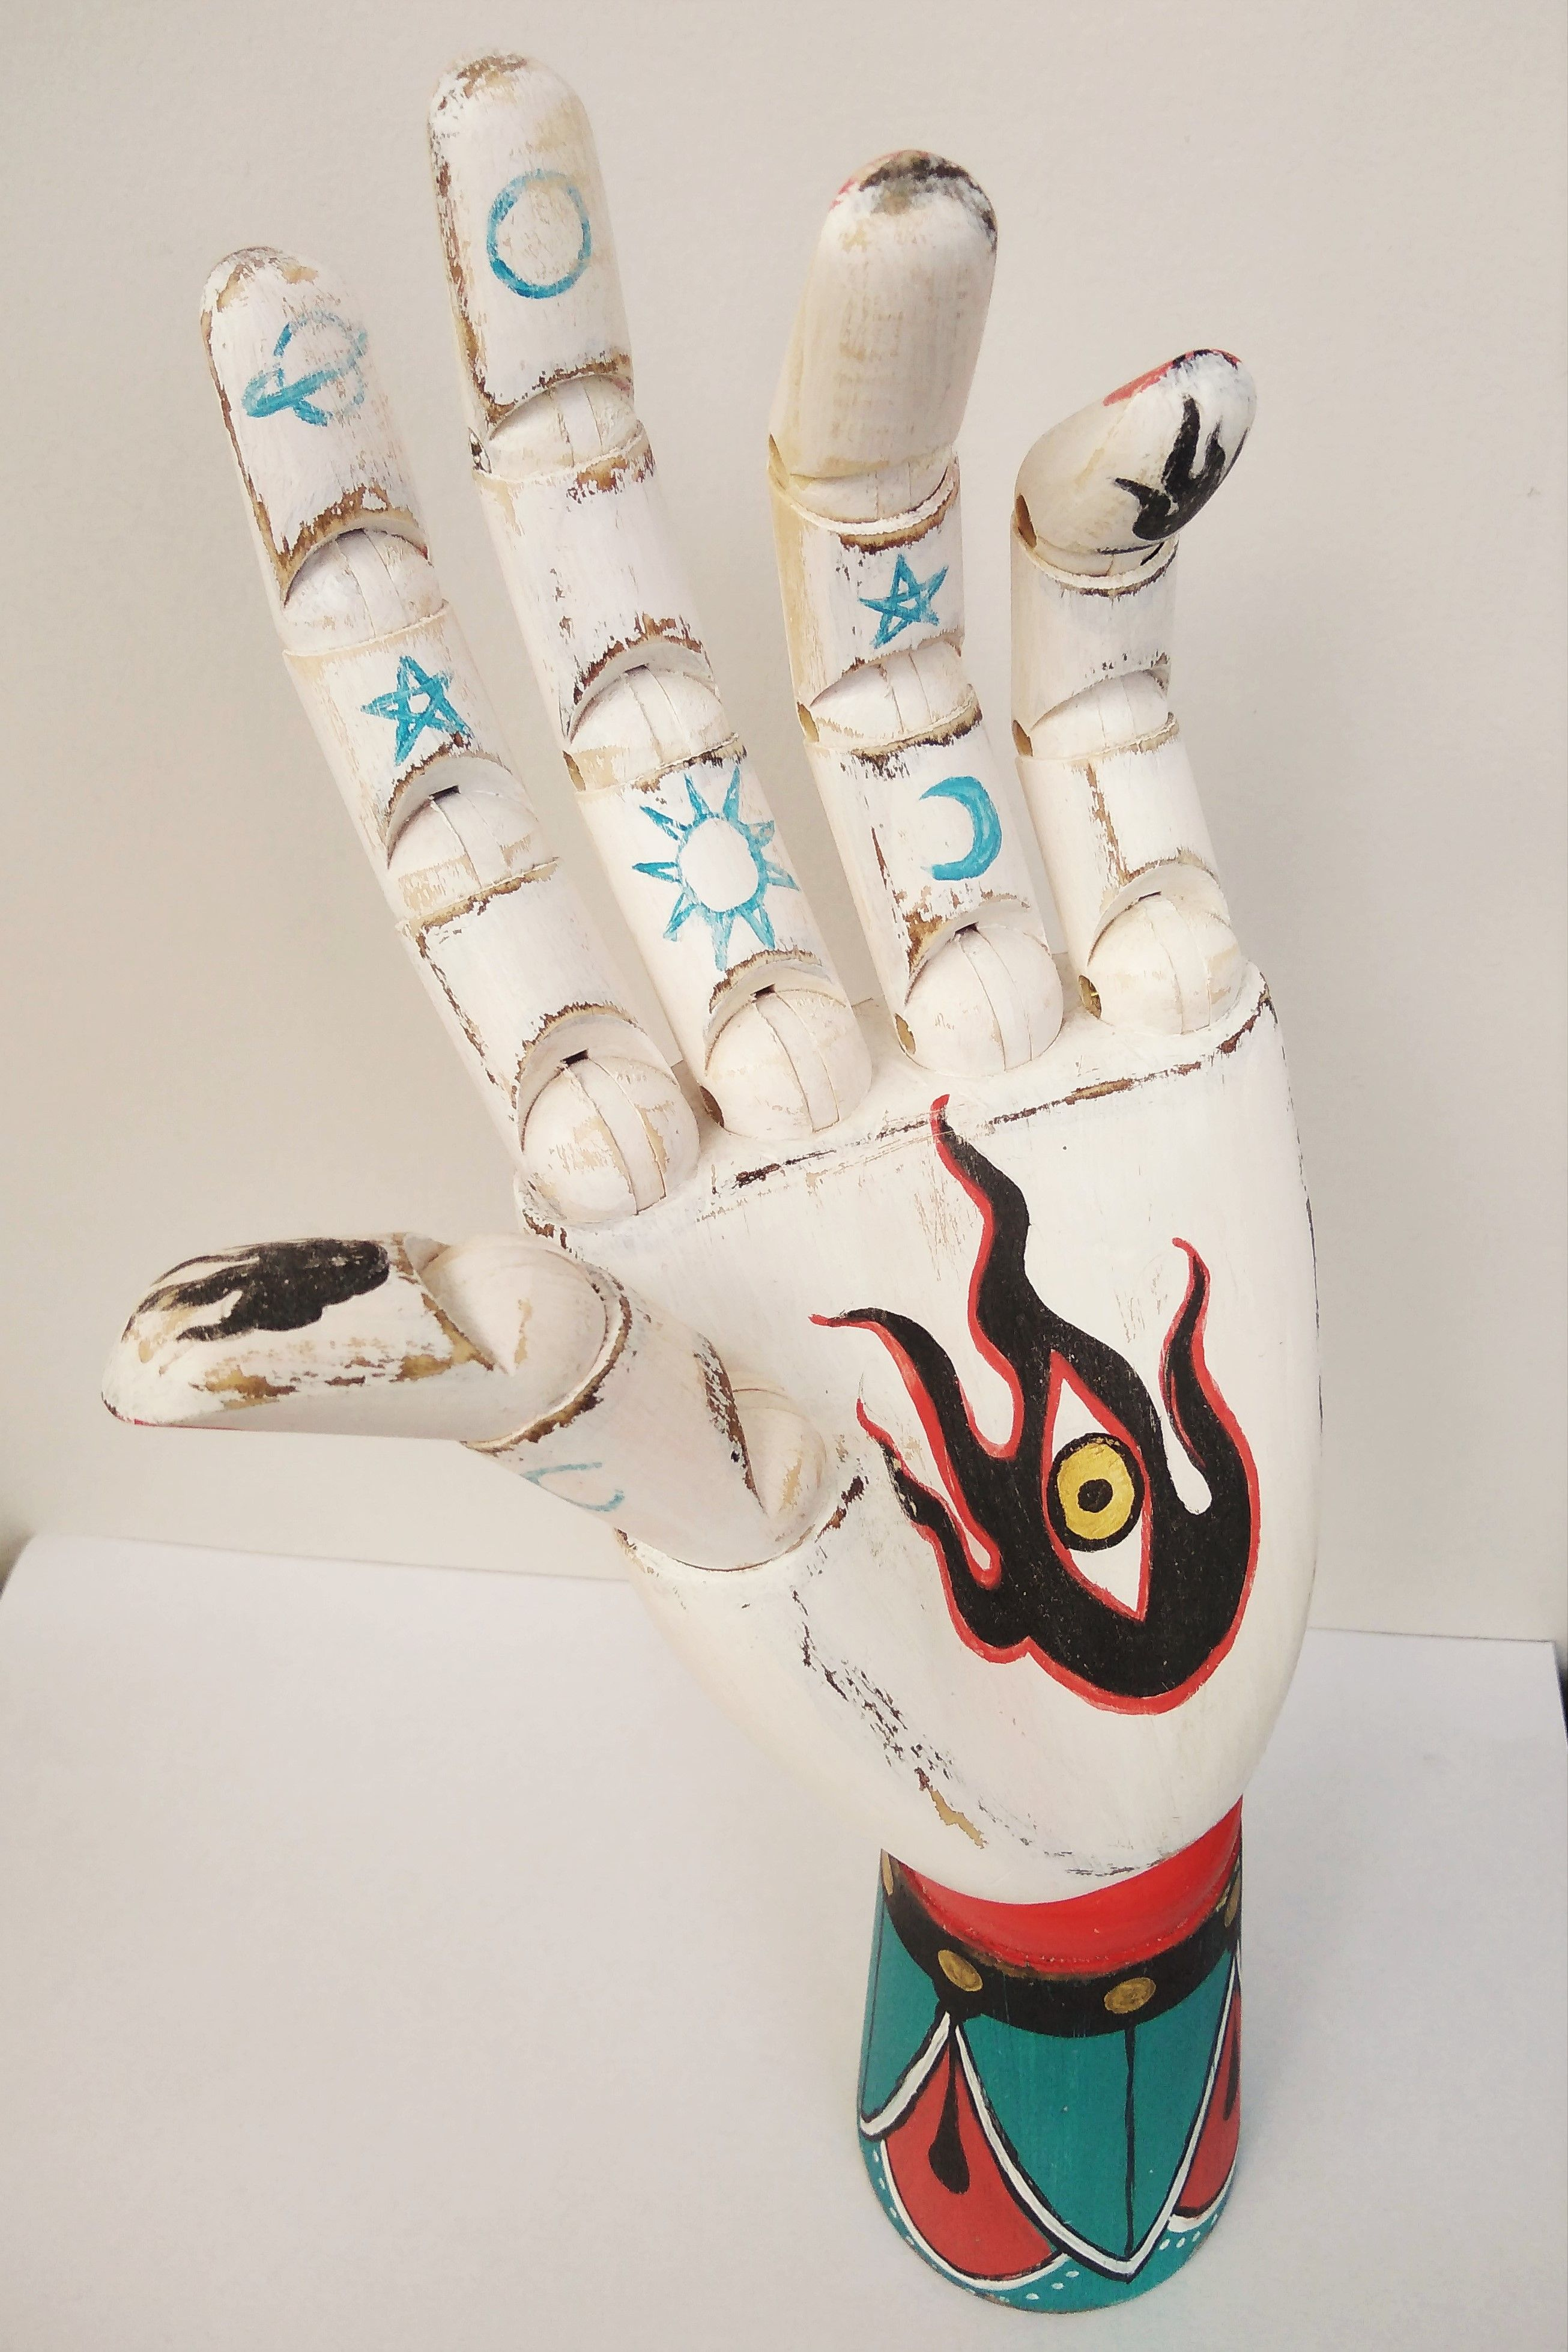 Hand Wicca, Blessing Moon, all seing eye, wooden hand, esoteric